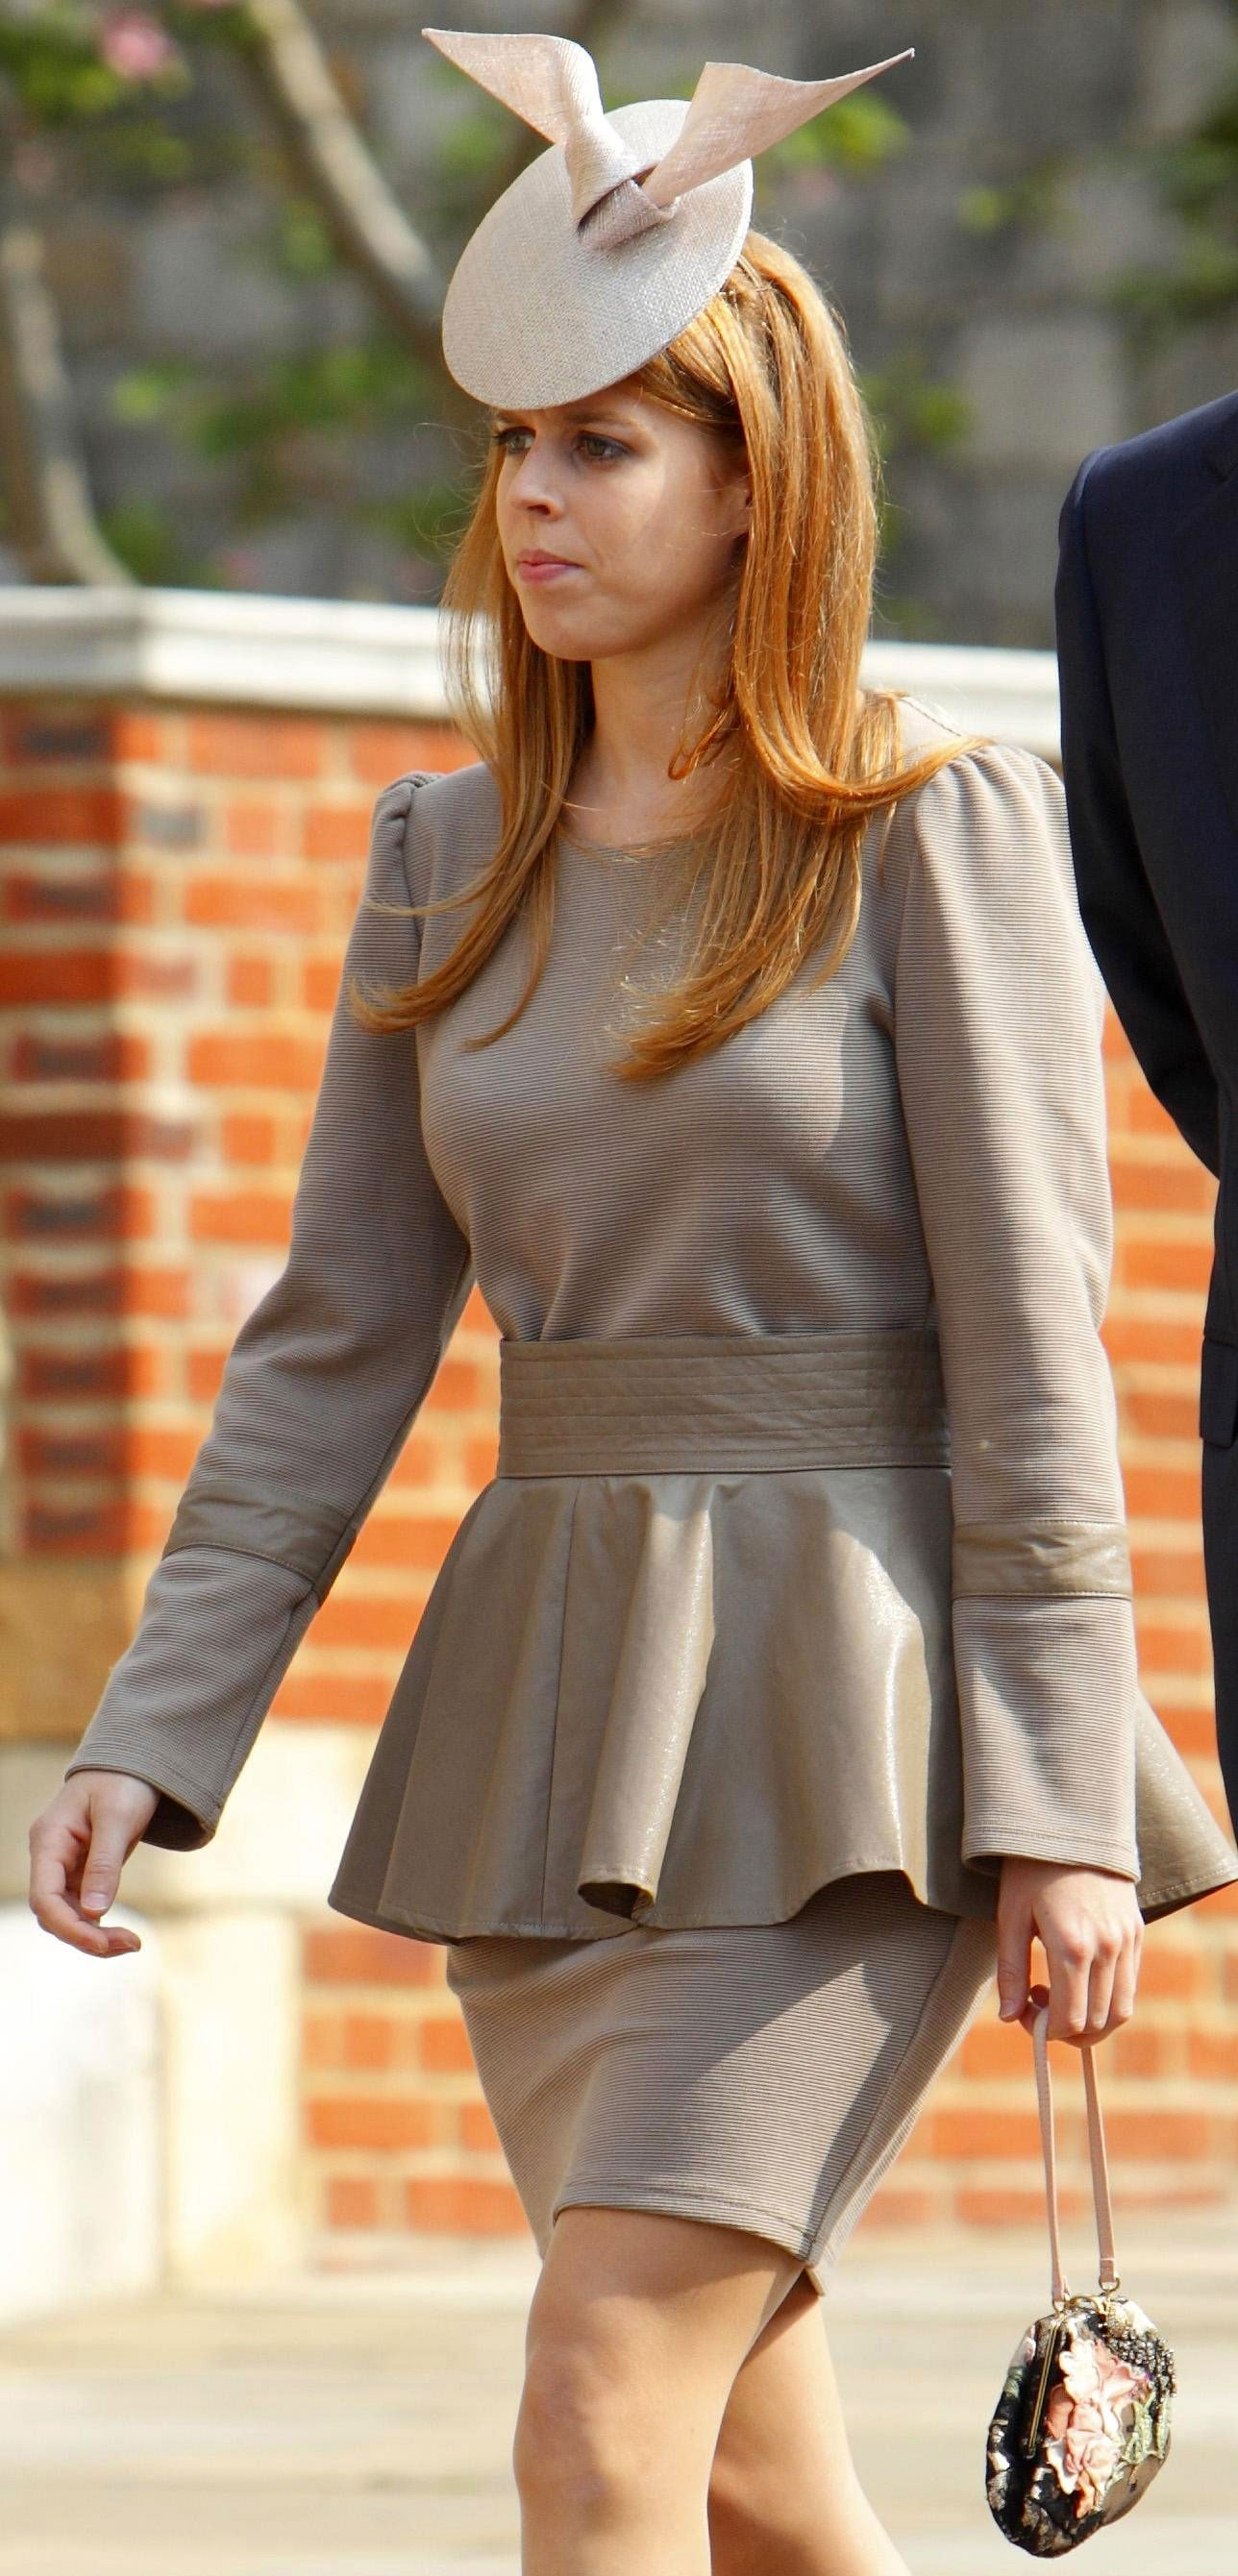 Princess Beatrice Of York Age 24 Royal Profile Princess